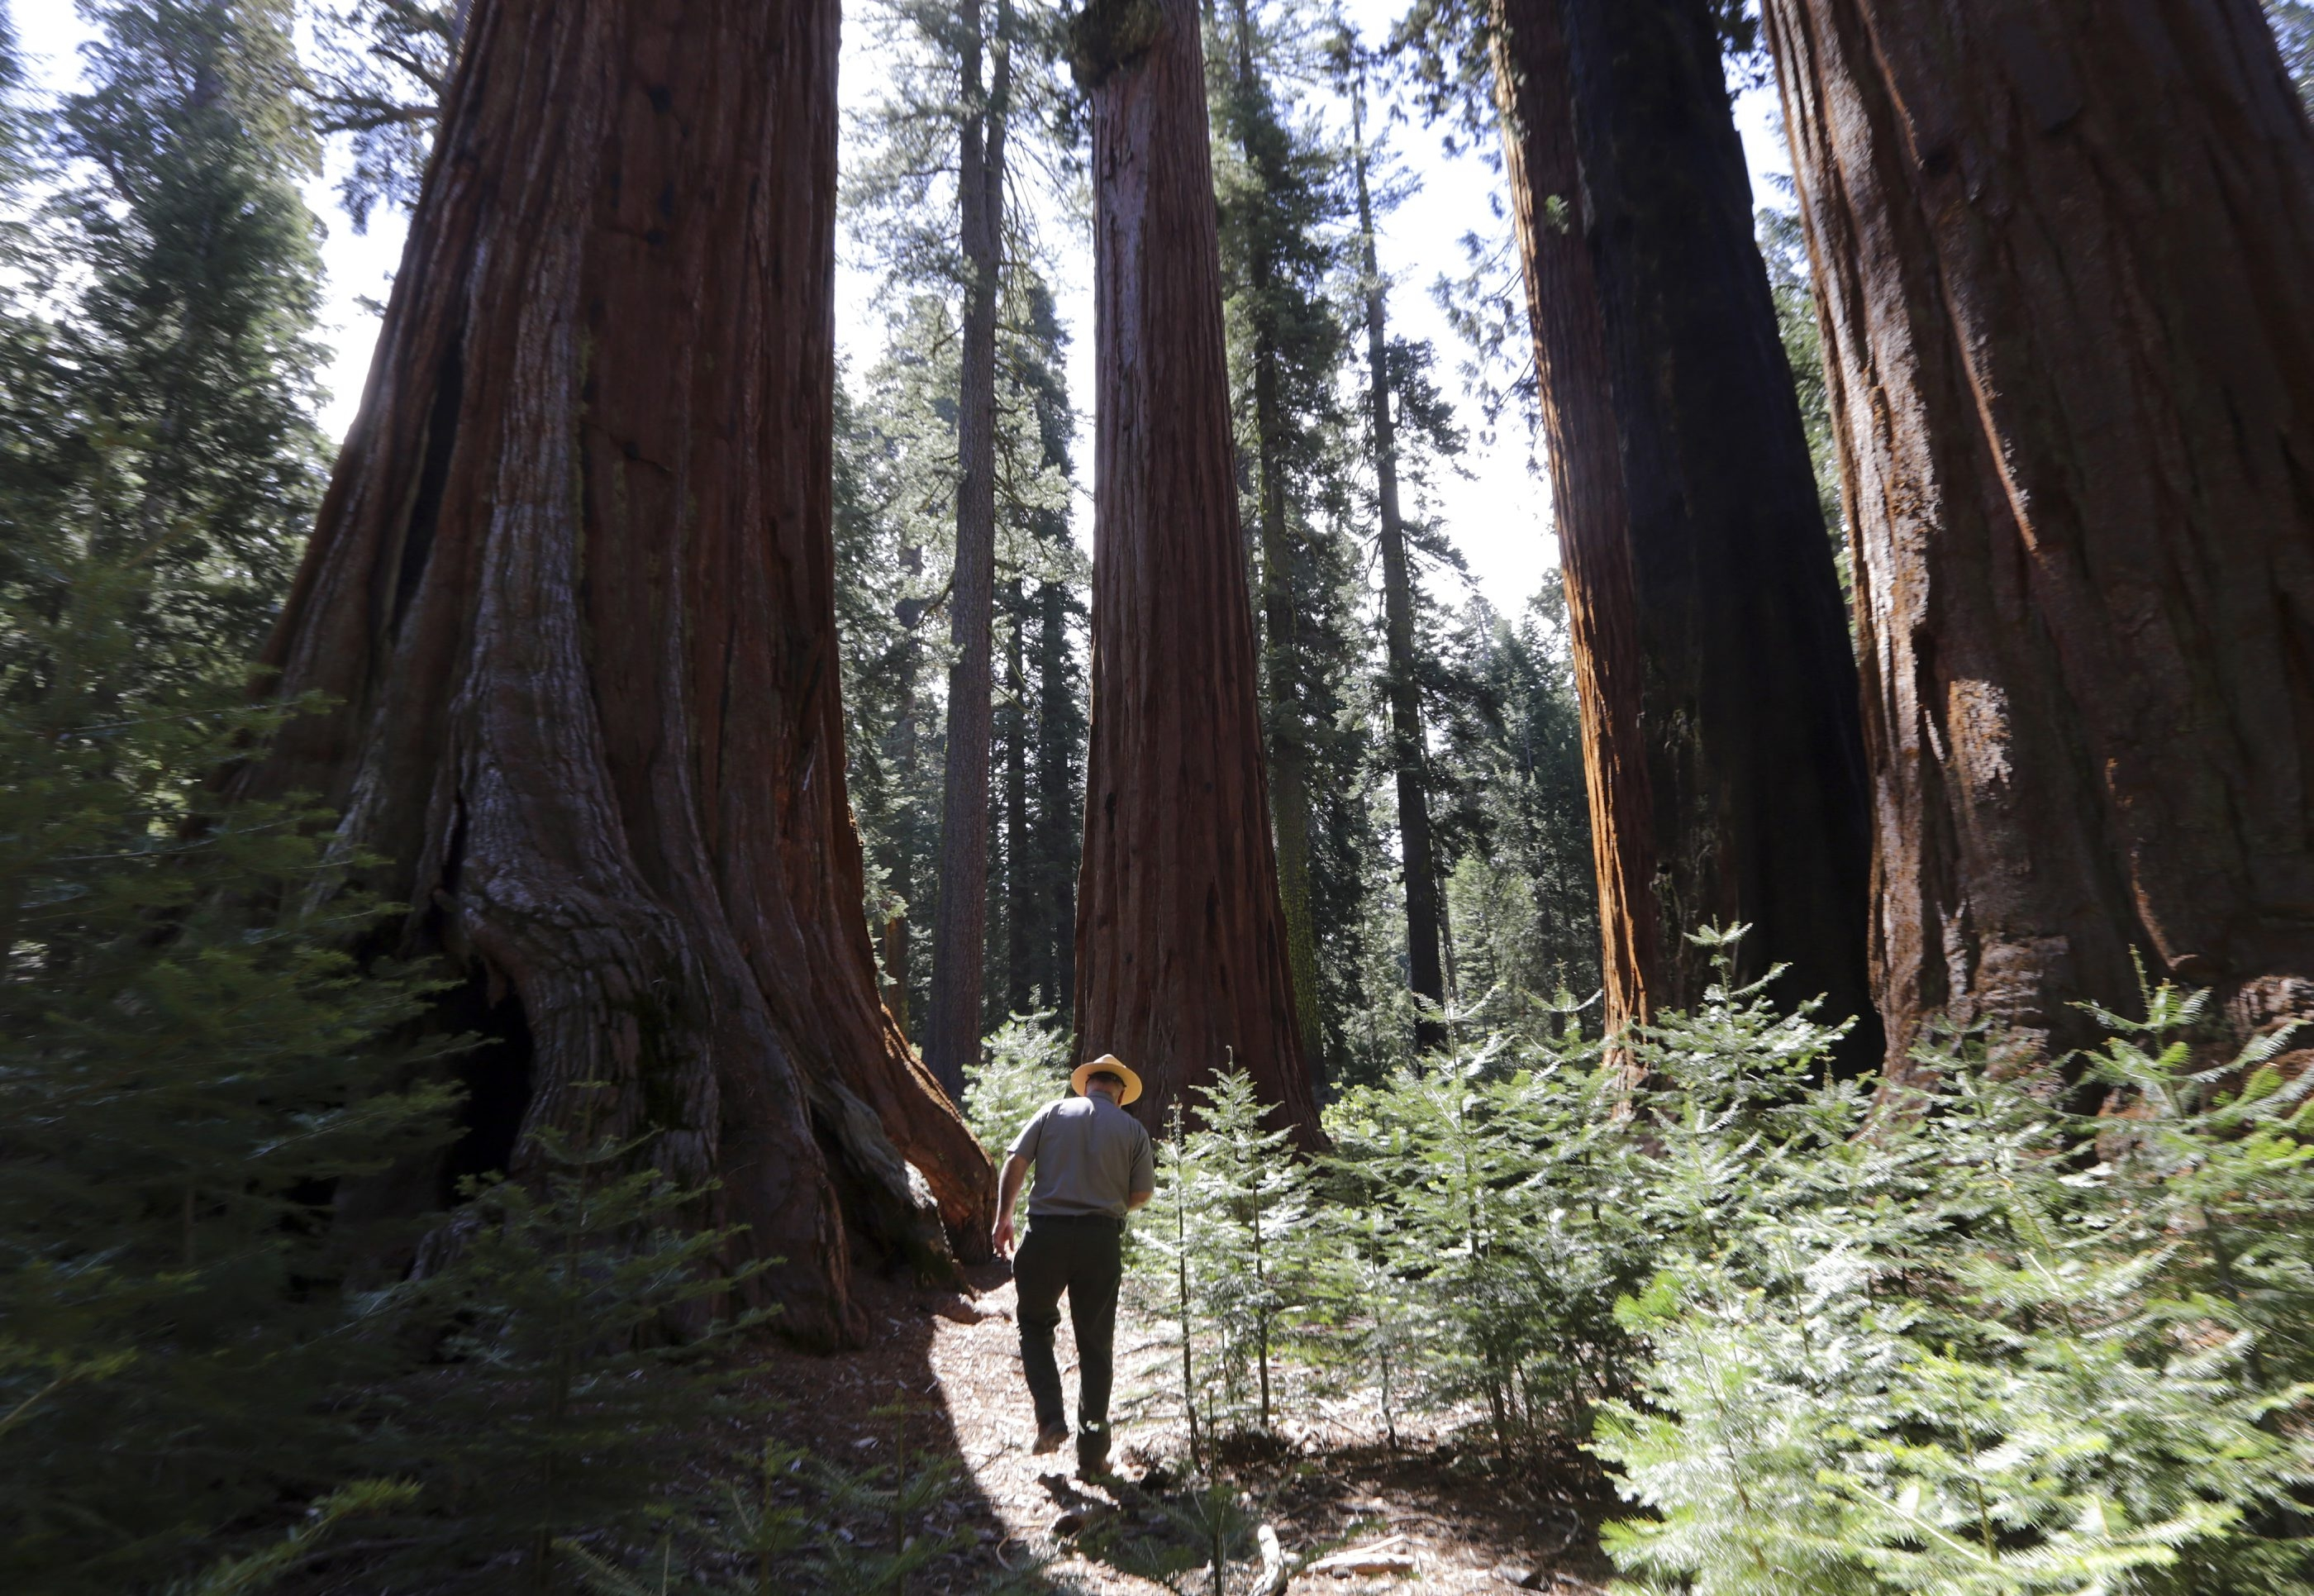 This group of sequoias in Yosemite National Park is called the Governor's Group. The National Park Service and the Yosemite Conservancy are teaming up on a $36 million project to remove a parking lot and a road that impinge on the grove's ancient sequoias.